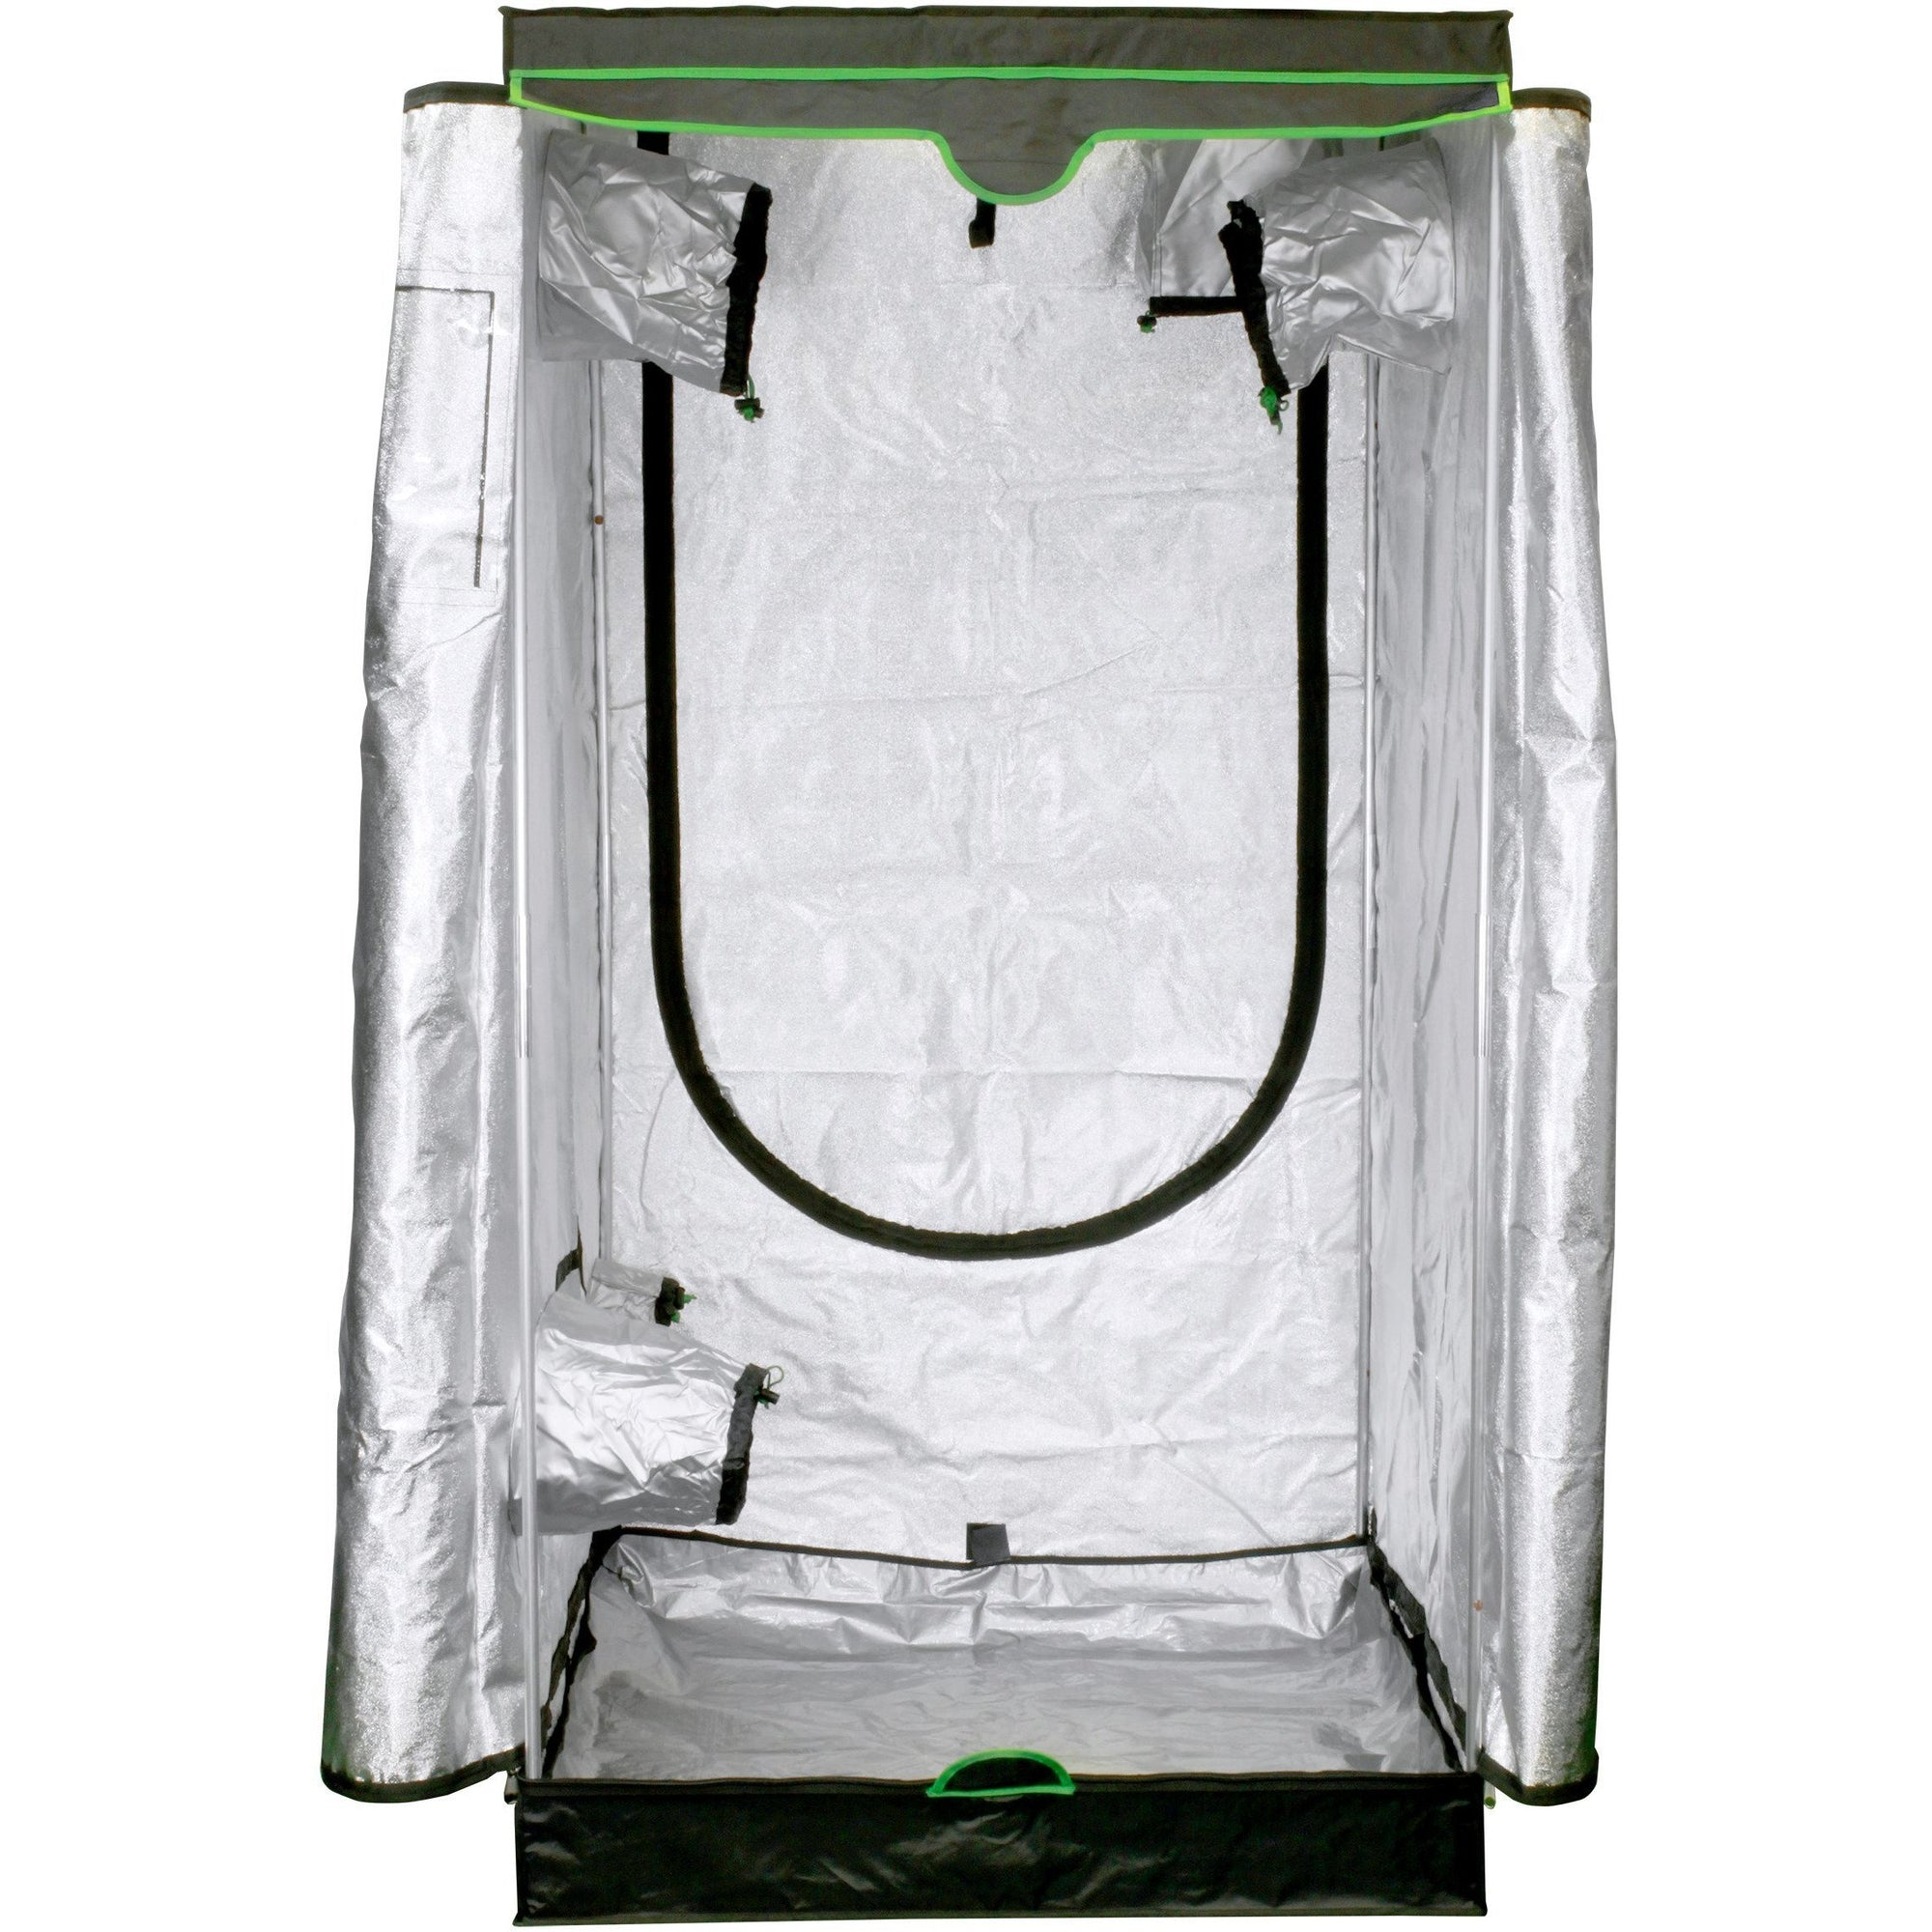 "Sun Hut Sun Hut Big Easy 70 3' x 3' x 6'5"" Hydroponic Grow Tent"